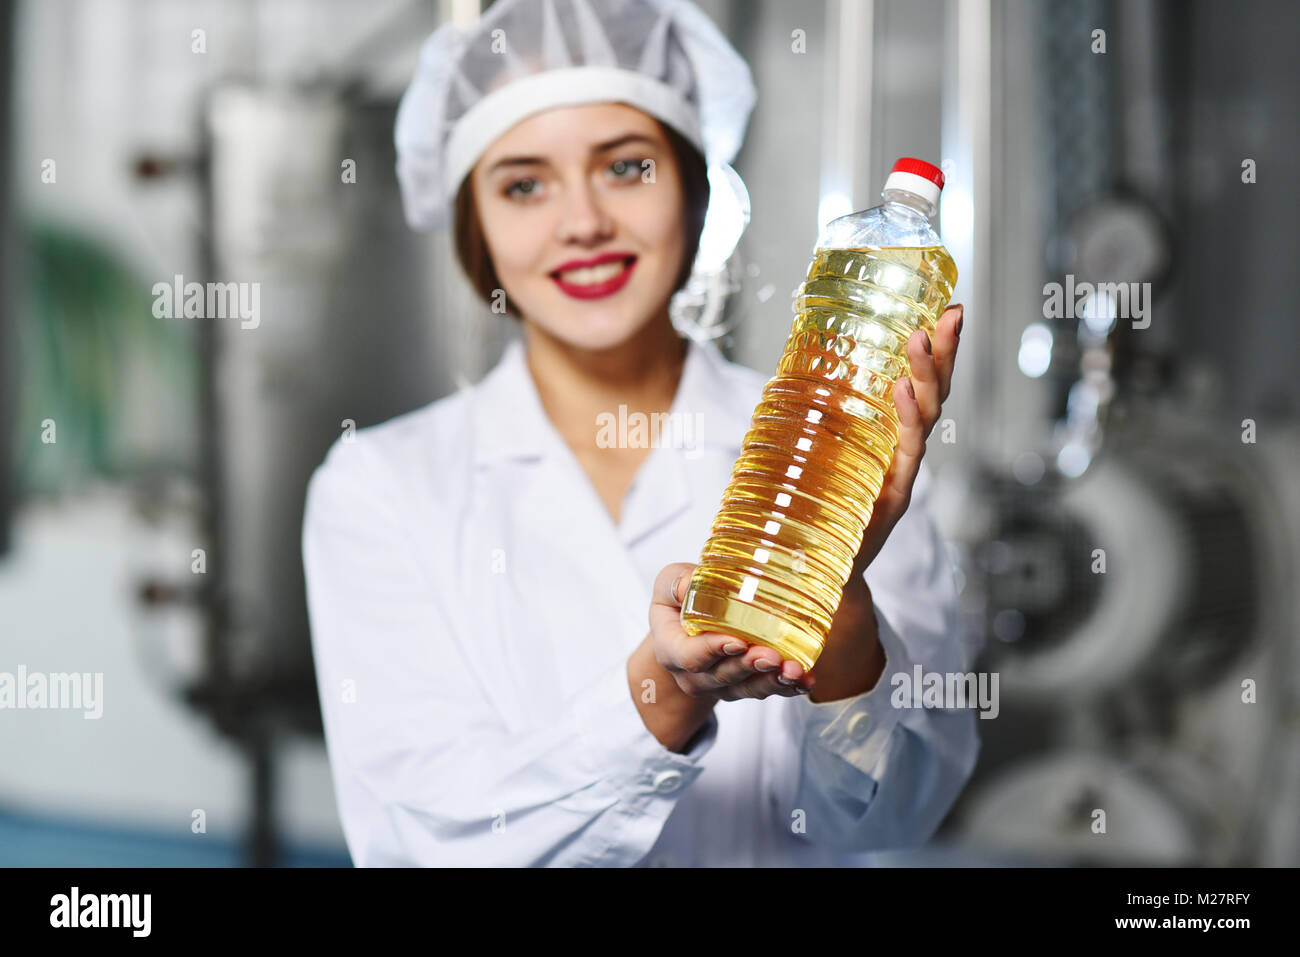 food production line of refined oil. - Stock Image